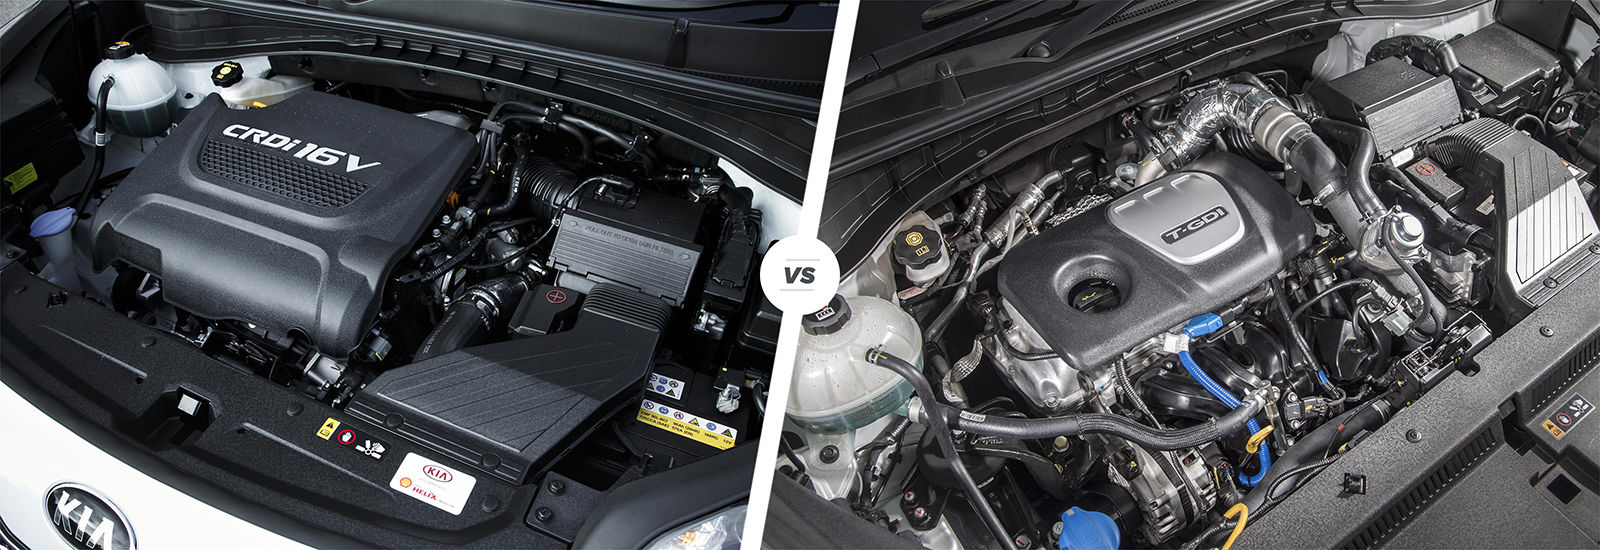 Kia Sportage Vs Hyundai Tucson U2013 Engines